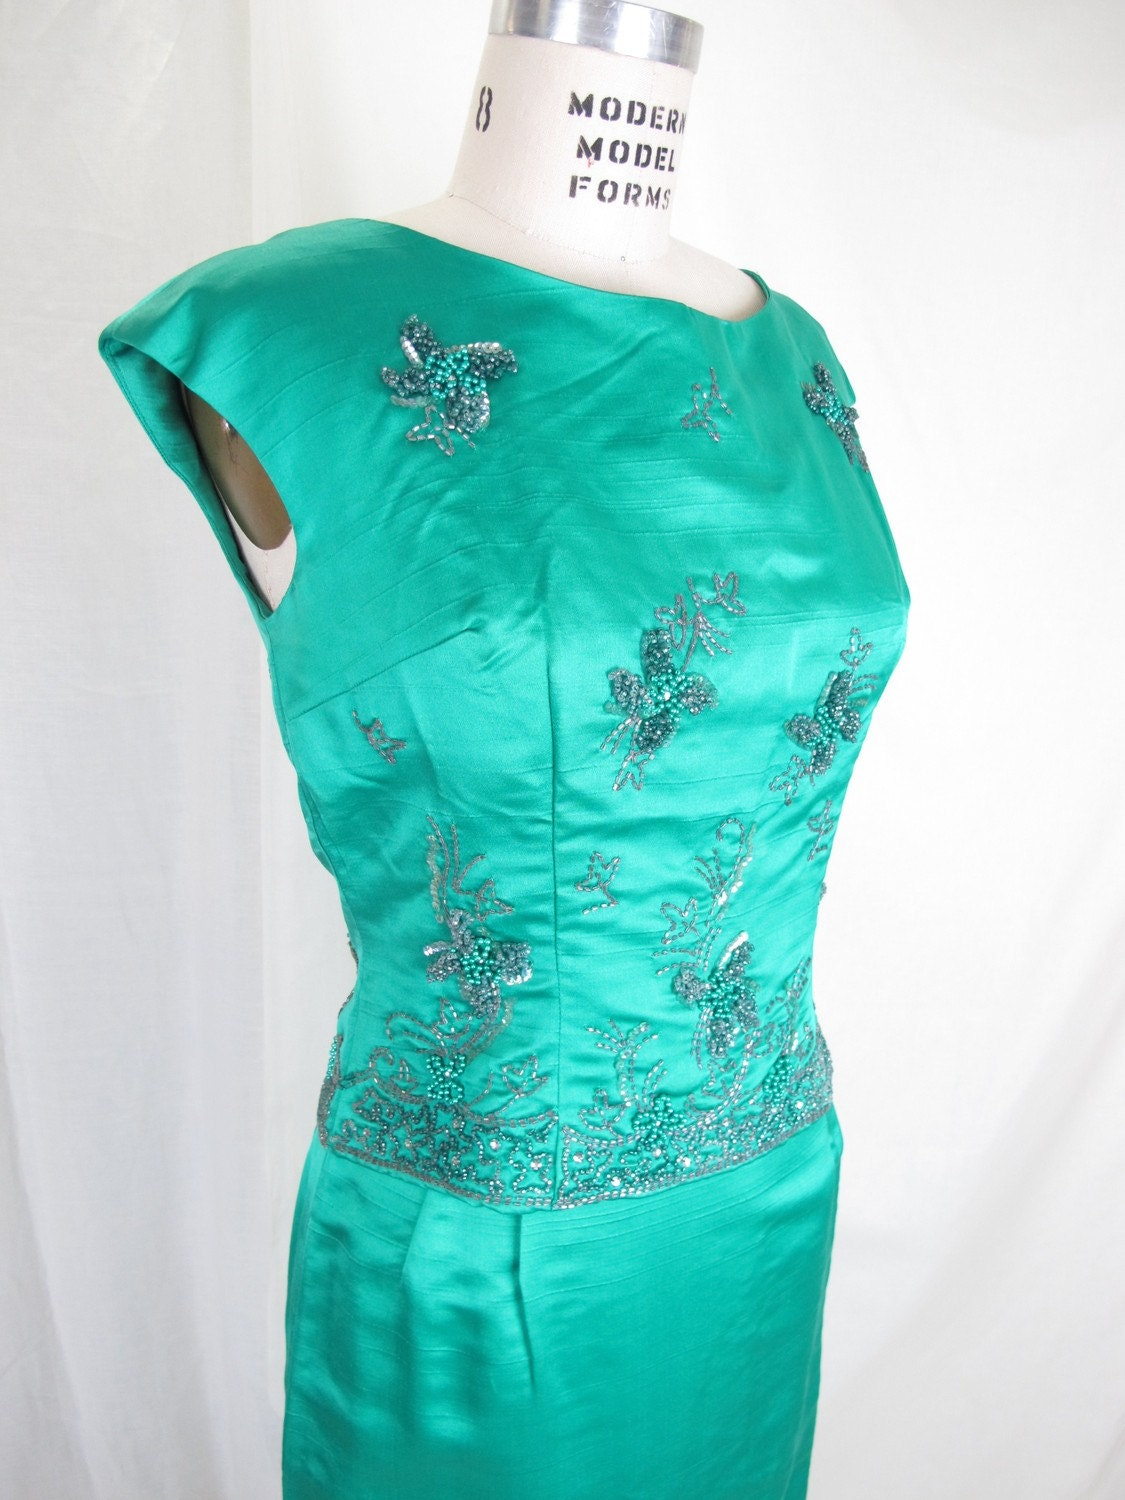 1960s emerald green sequined and beaded vintage dress